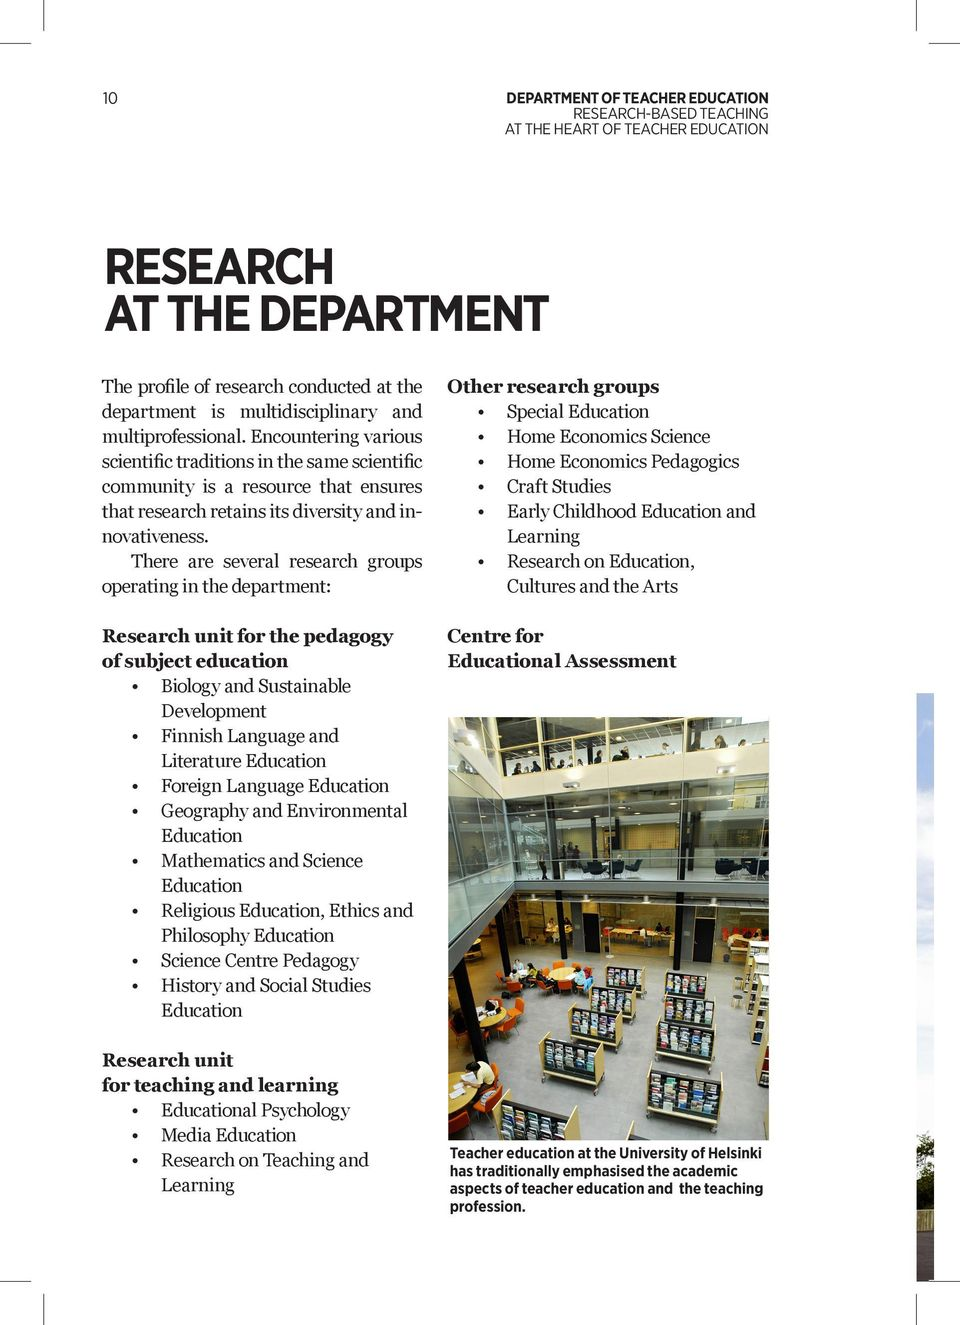 There are several research groups operating in the department: Research unit for the pedagogy of subject education Biology and Sustainable Development Finnish Language and Literature Education